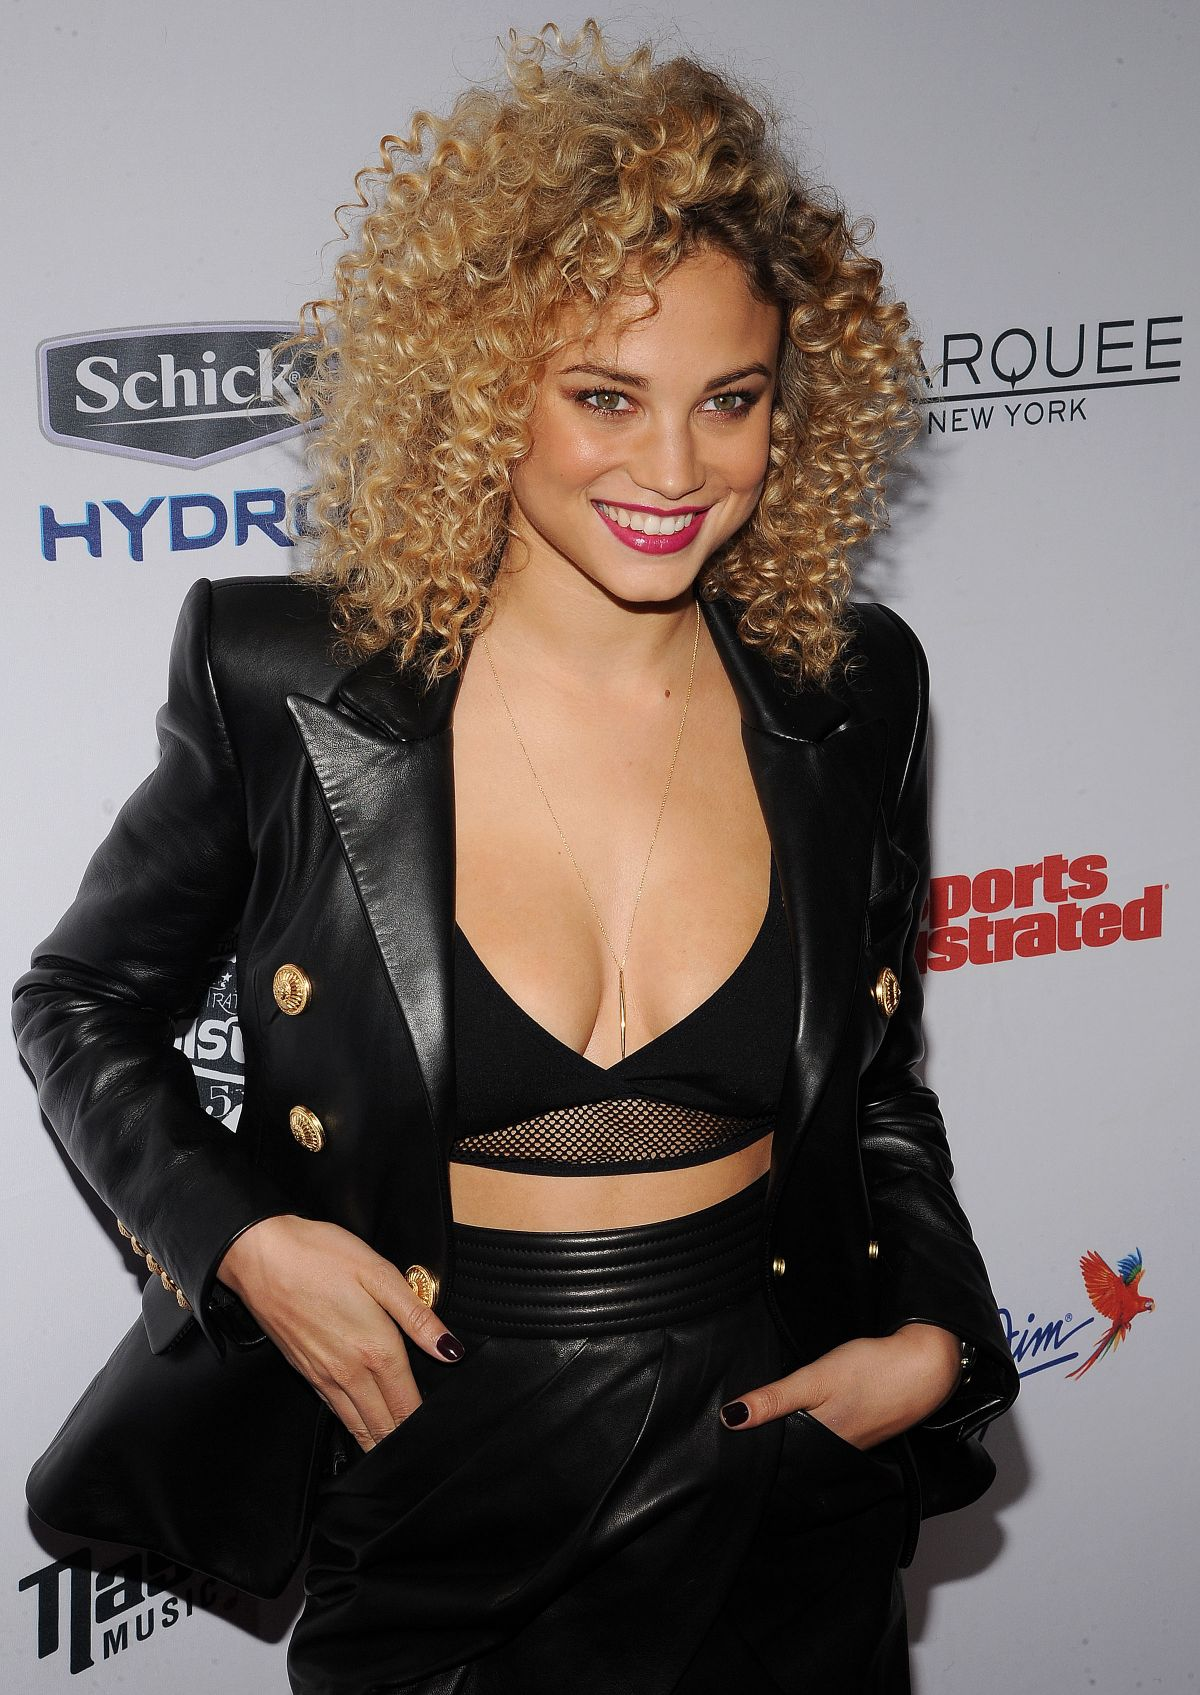 Paparazzi Rose Bertram naked (95 foto and video), Topless, Sideboobs, Twitter, butt 2019